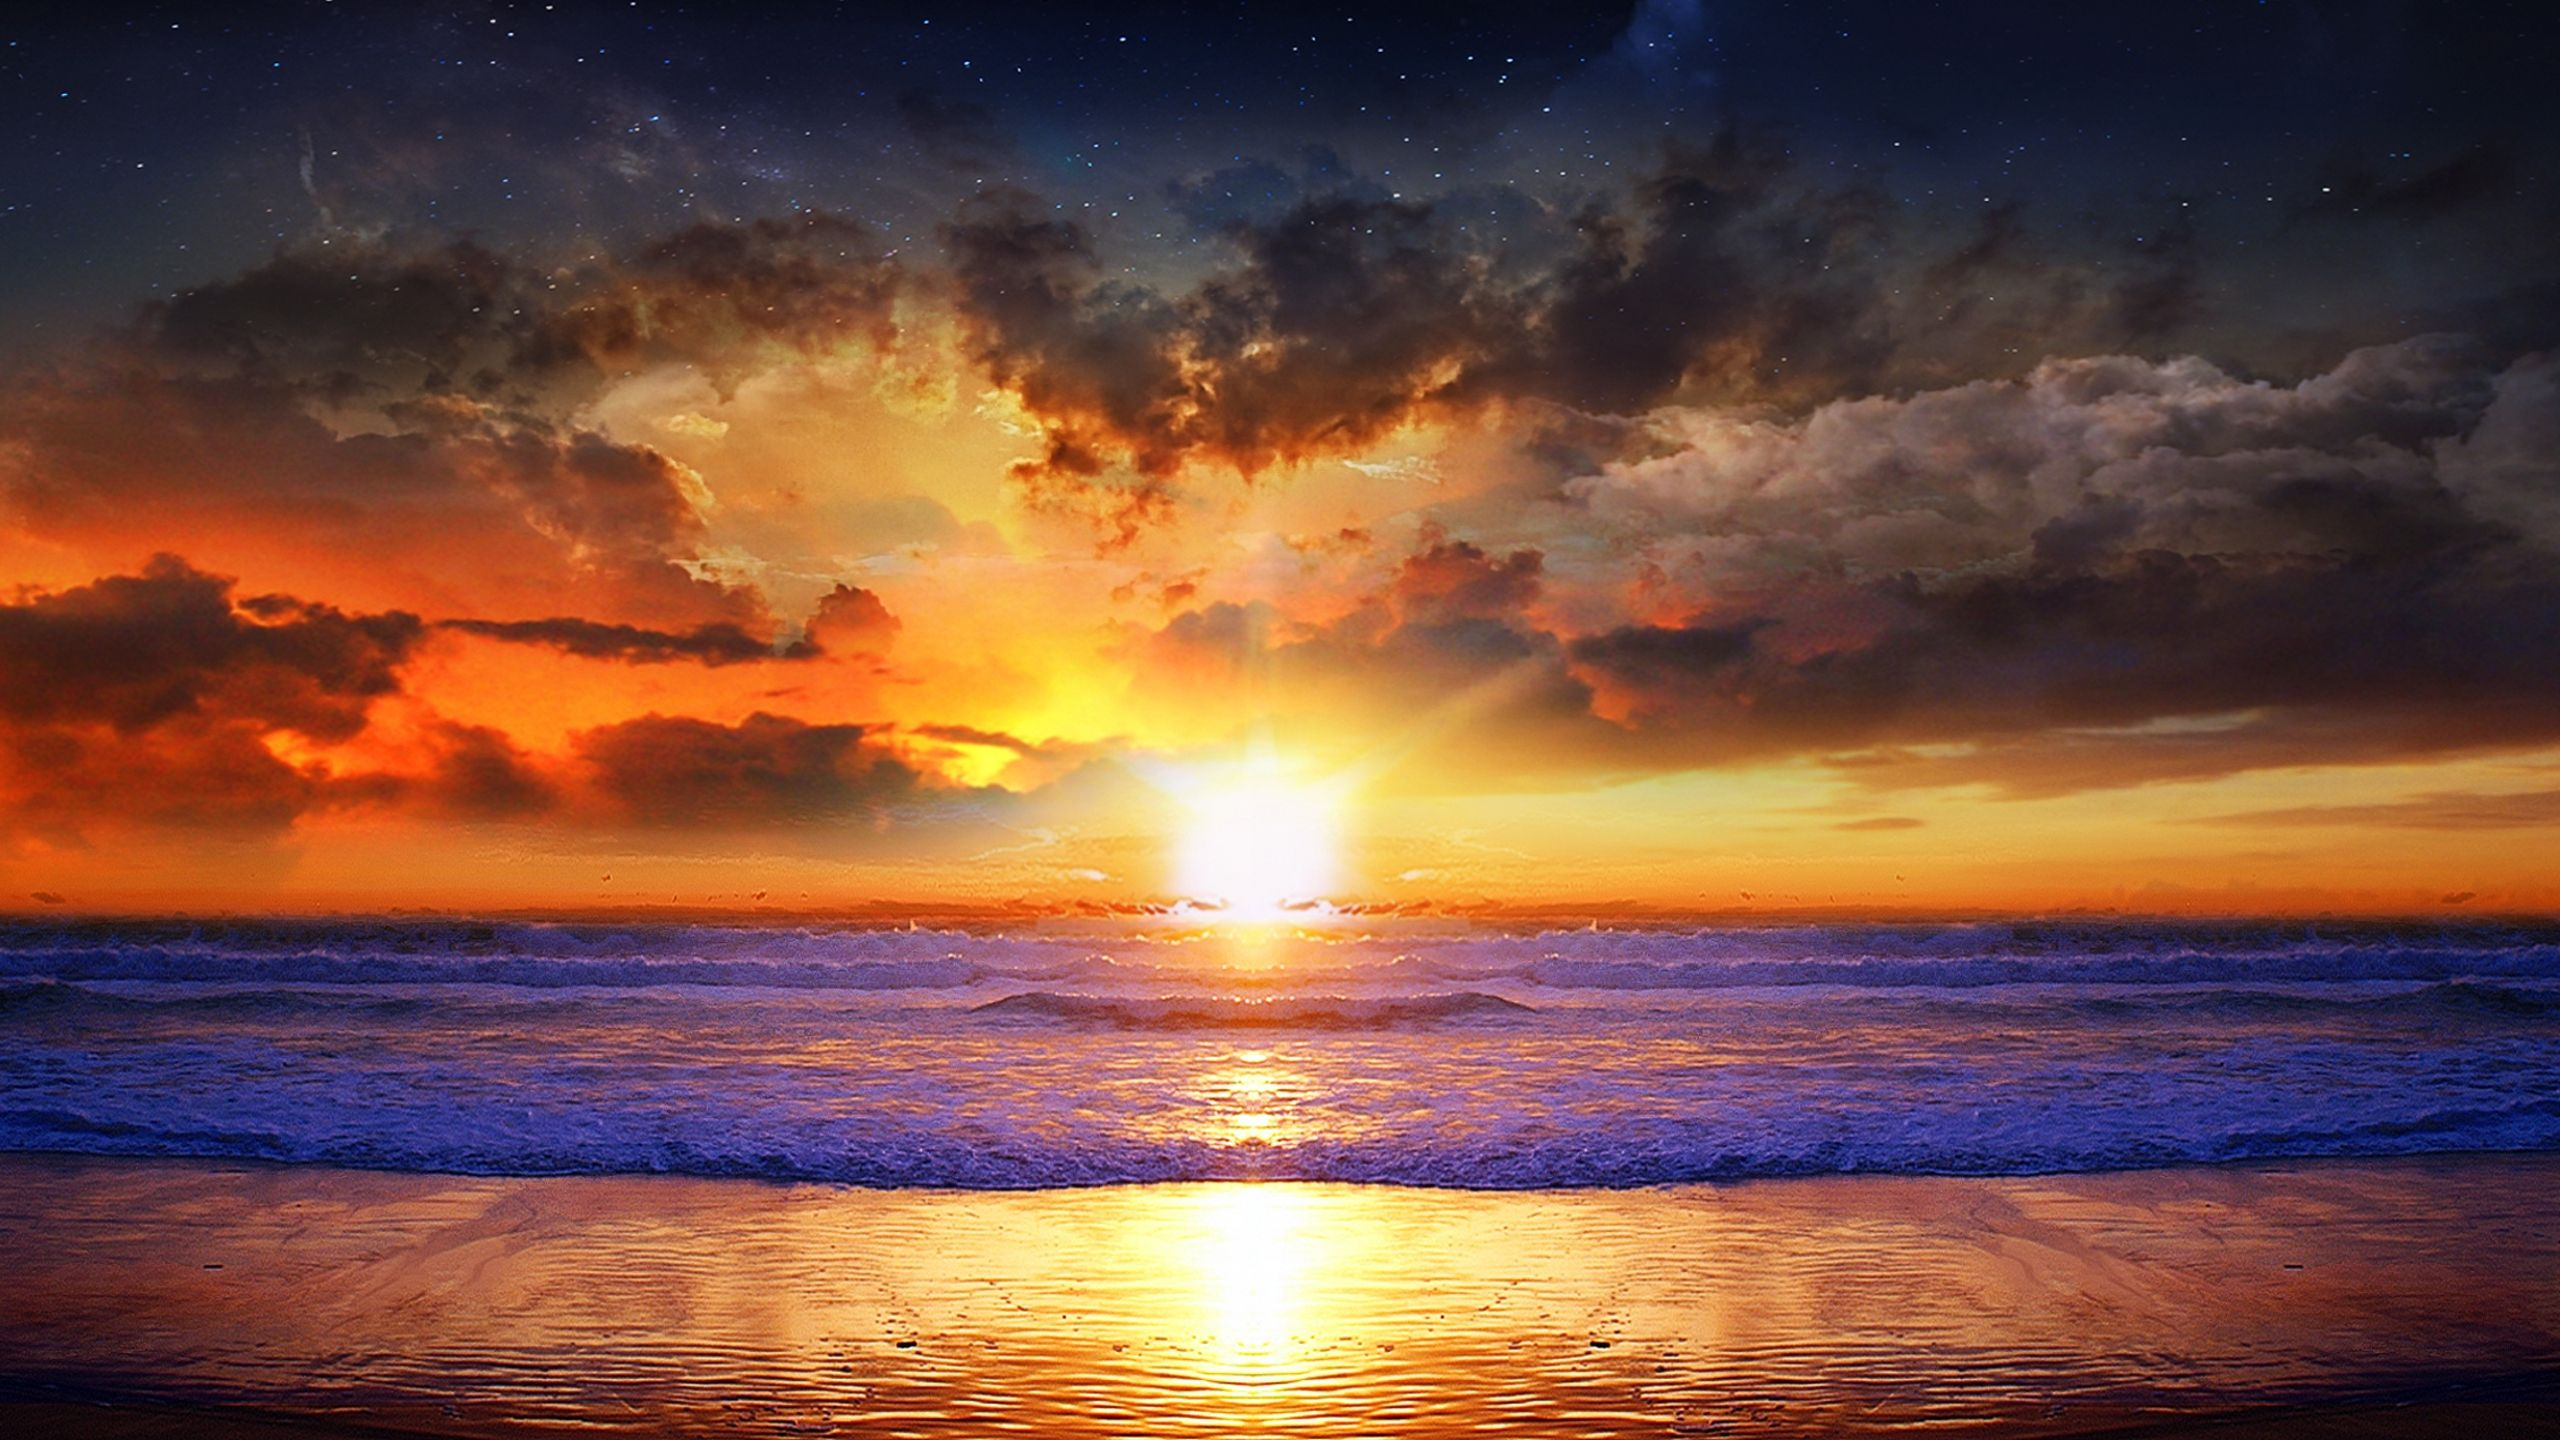 sunrise pictures free - HD 2560×1440